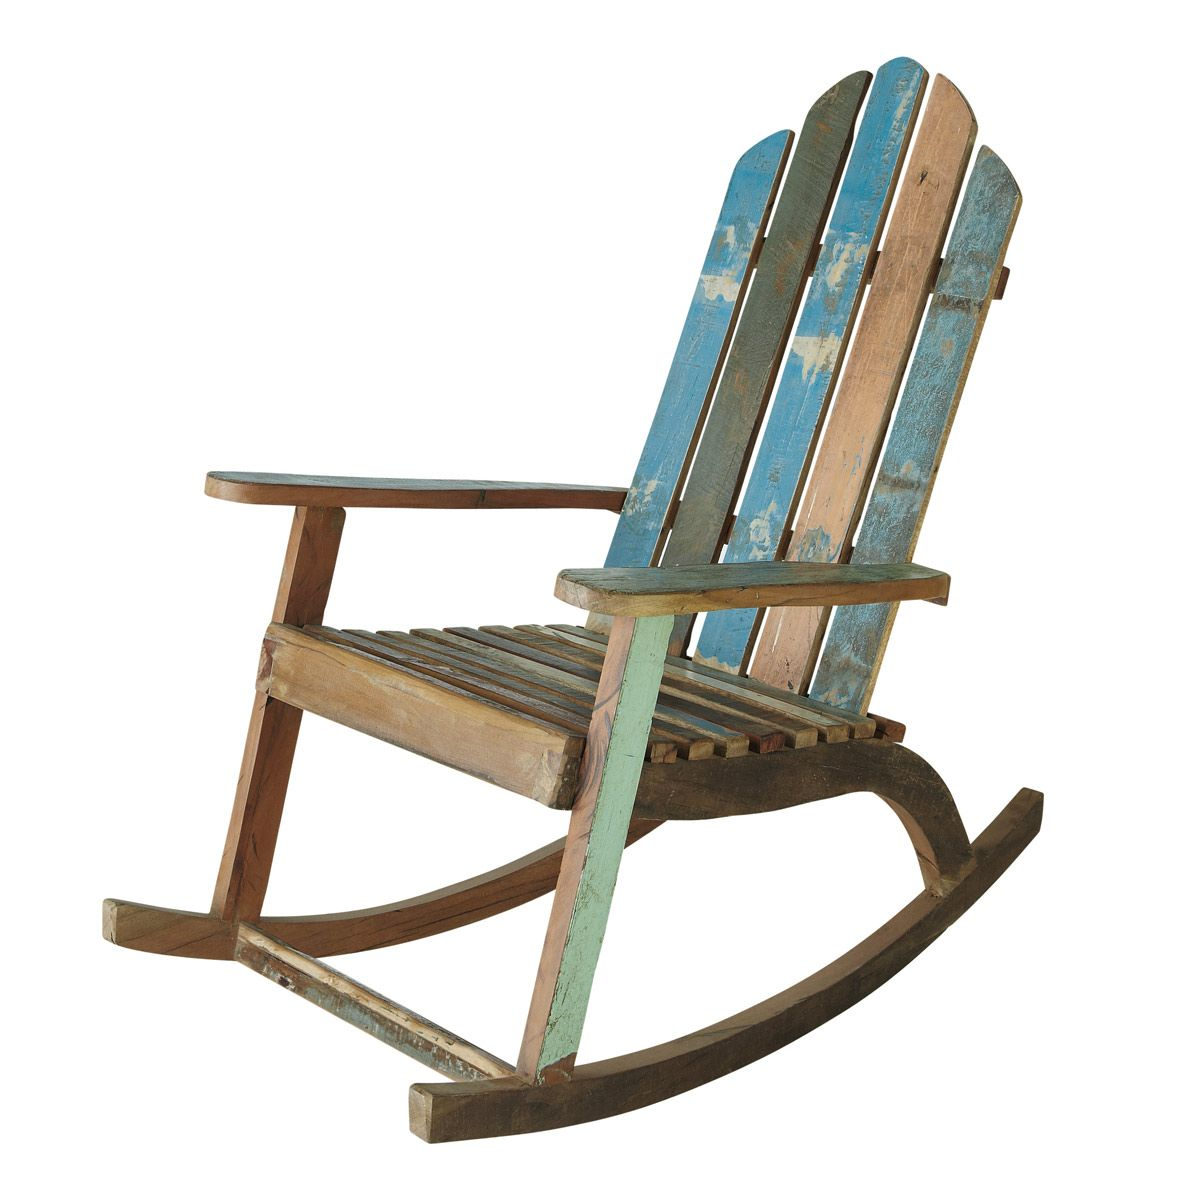 fauteuil bascule bois recycl calanque i n d u s pinterest rocking chairs chairs and. Black Bedroom Furniture Sets. Home Design Ideas